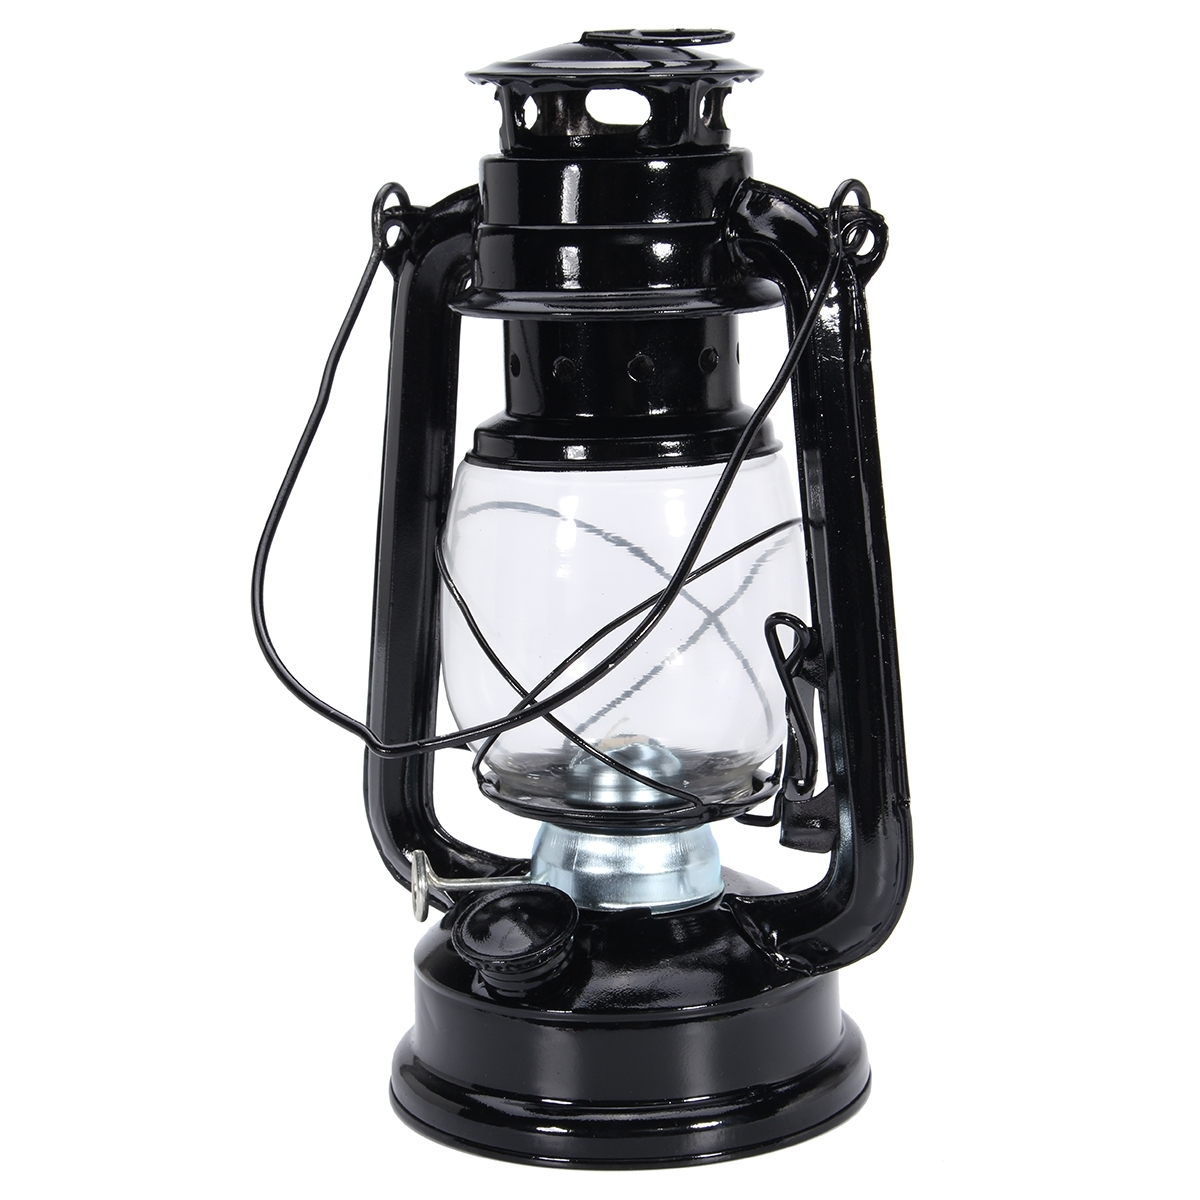 Hurricane Storm Lantern Kerosene Light Oil Camping Lamp Outdoor With Widely Used Outdoor Storm Lanterns (View 9 of 20)